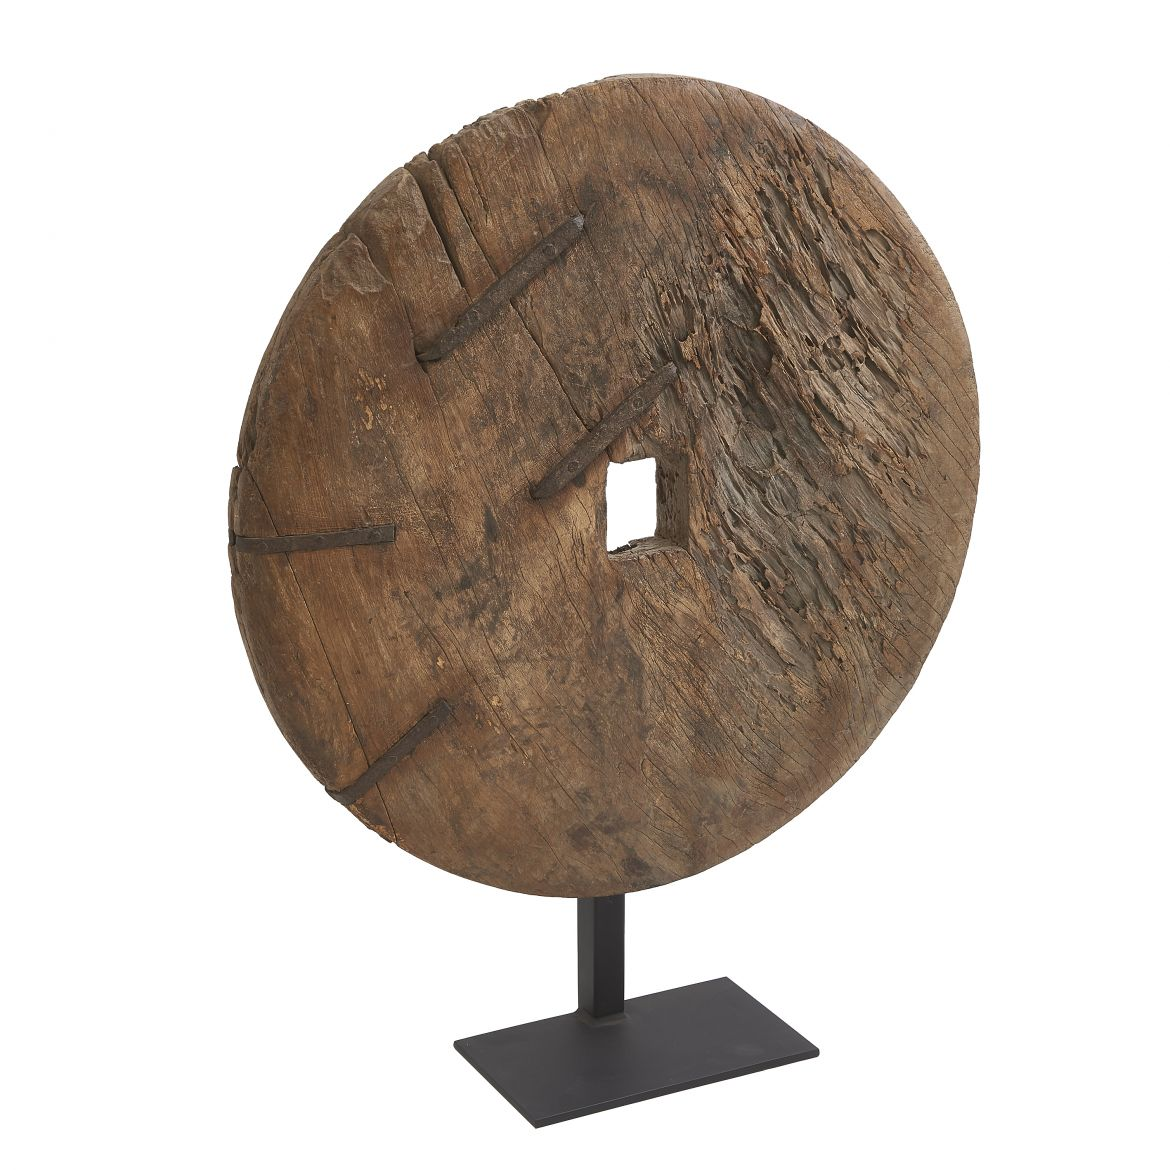 Carved Wooden Wheel On Stand